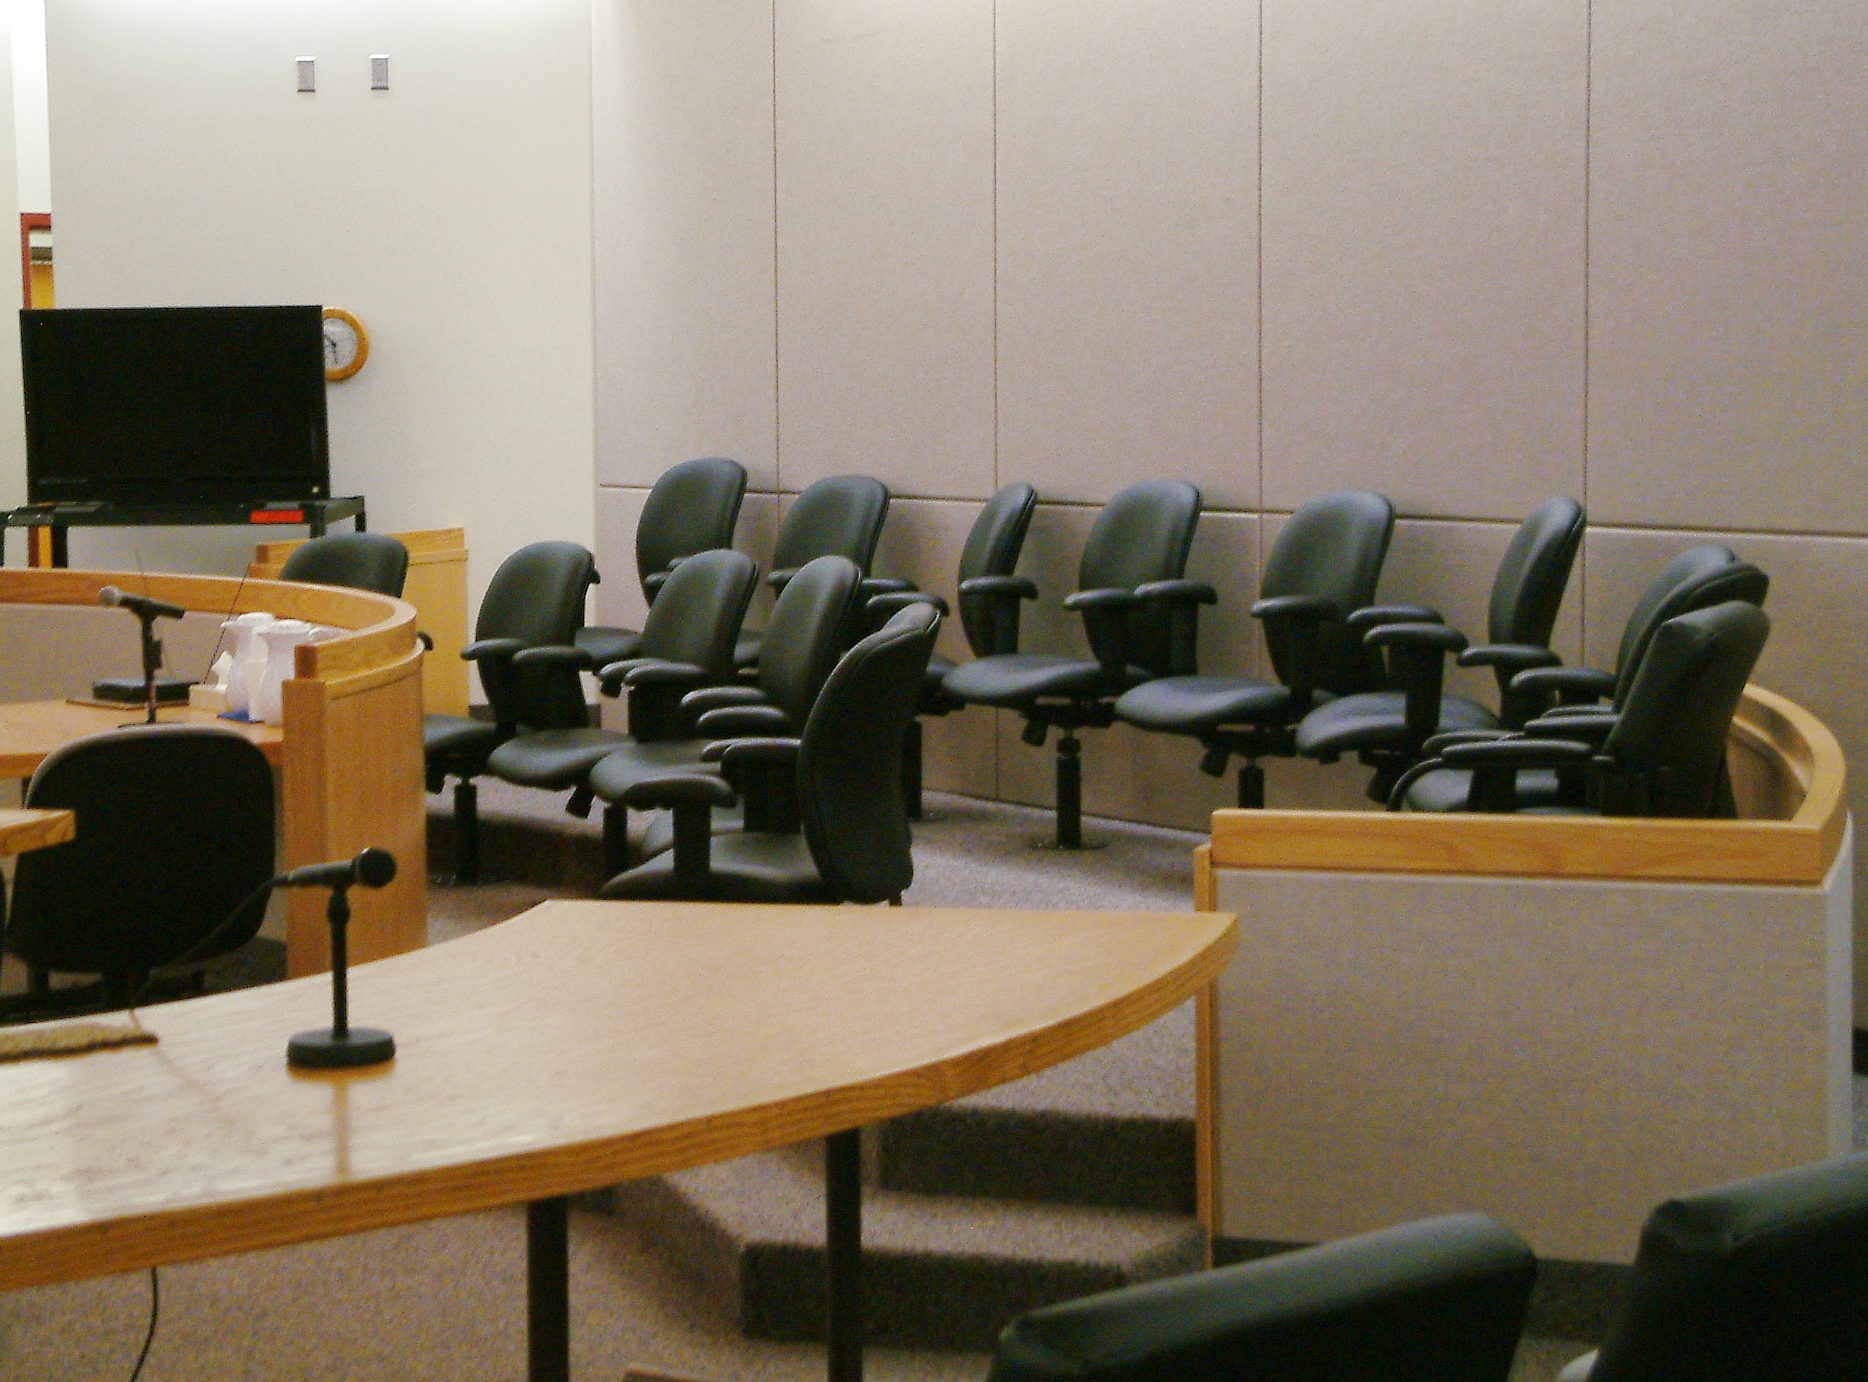 View of the jury box in one of the courtrooms in the Dimond Courthouse in Juneau. (Photo by Matt Miller, KTOO - Juneau)